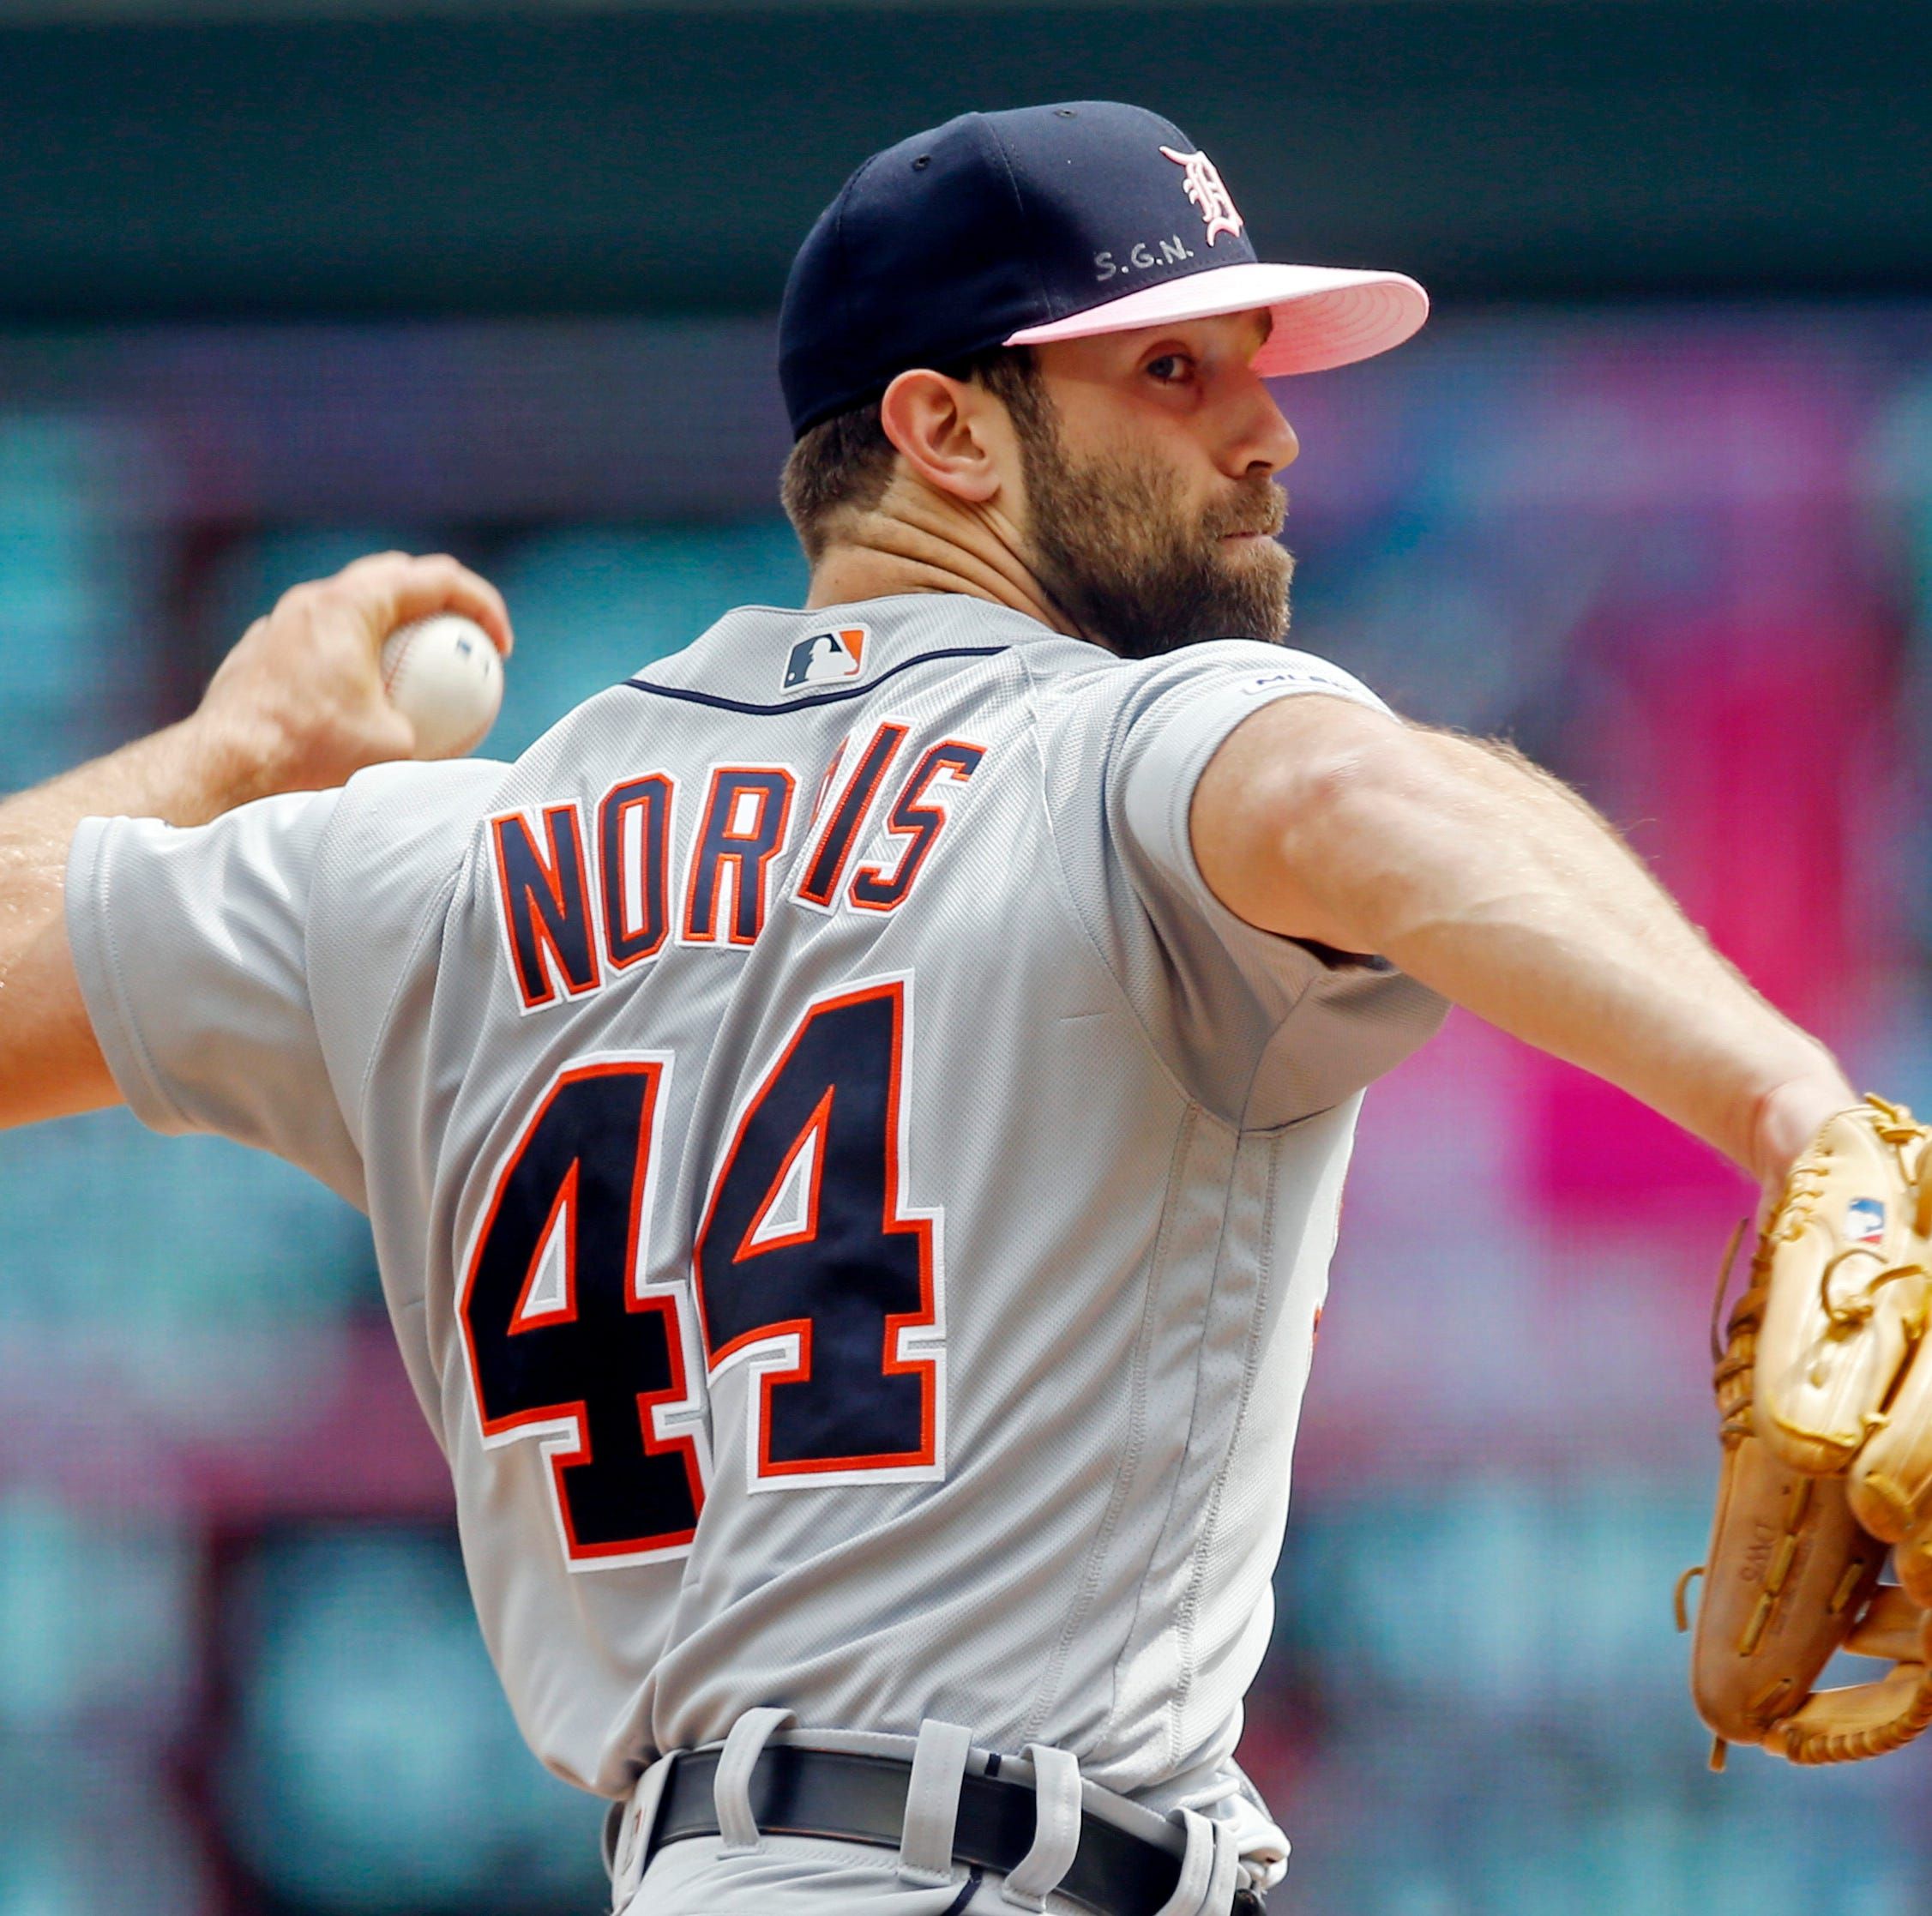 Justin Verlander helped Tigers' Daniel Norris get past darkness of rehab